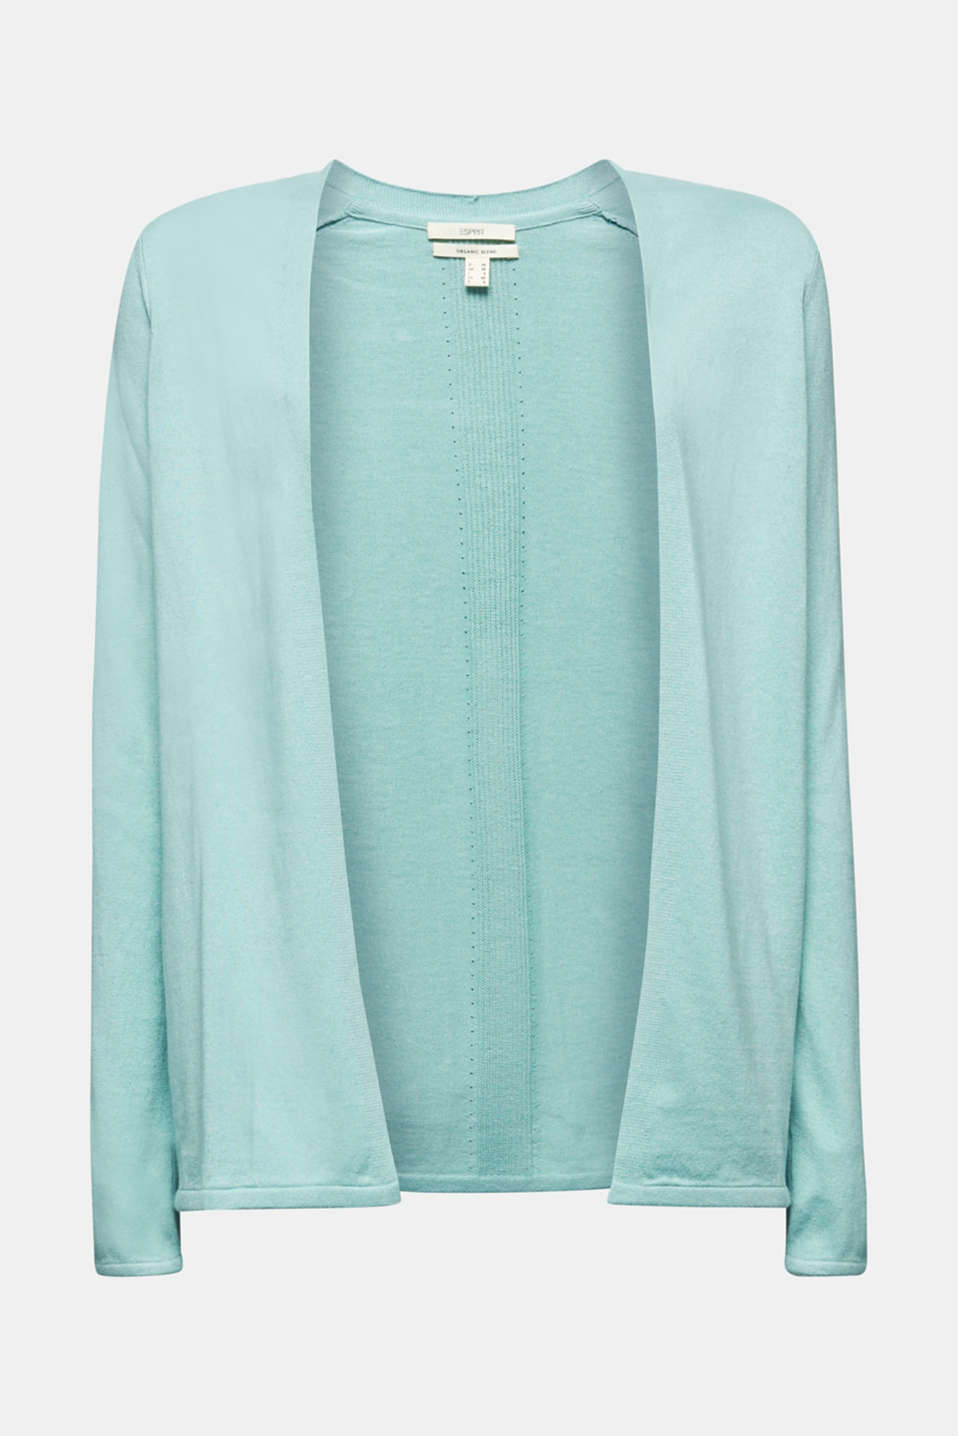 Open cardigan with an openwork pattern, LIGHT AQUA GREEN, detail image number 5